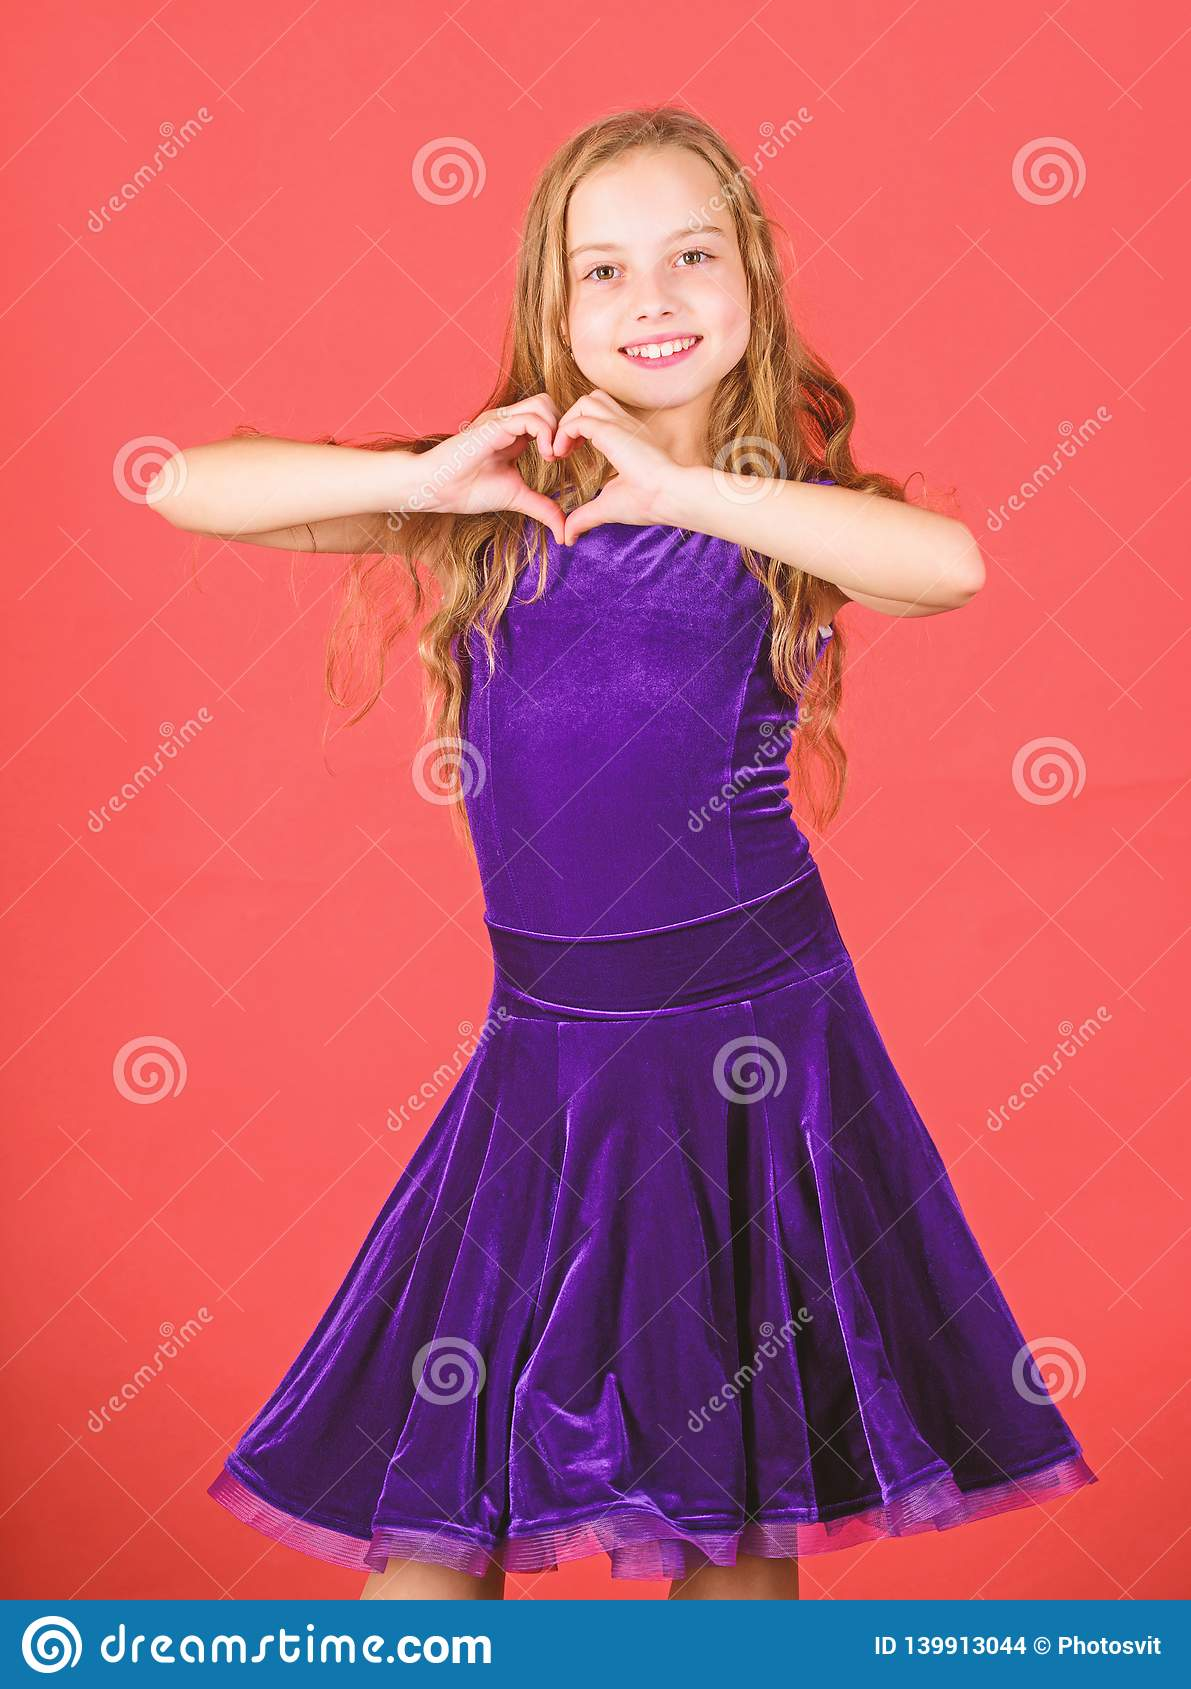 Love concept. Girl cute child show heart shaped hand gesture. Symbol of love. Kid adorable girl with long hair smiling